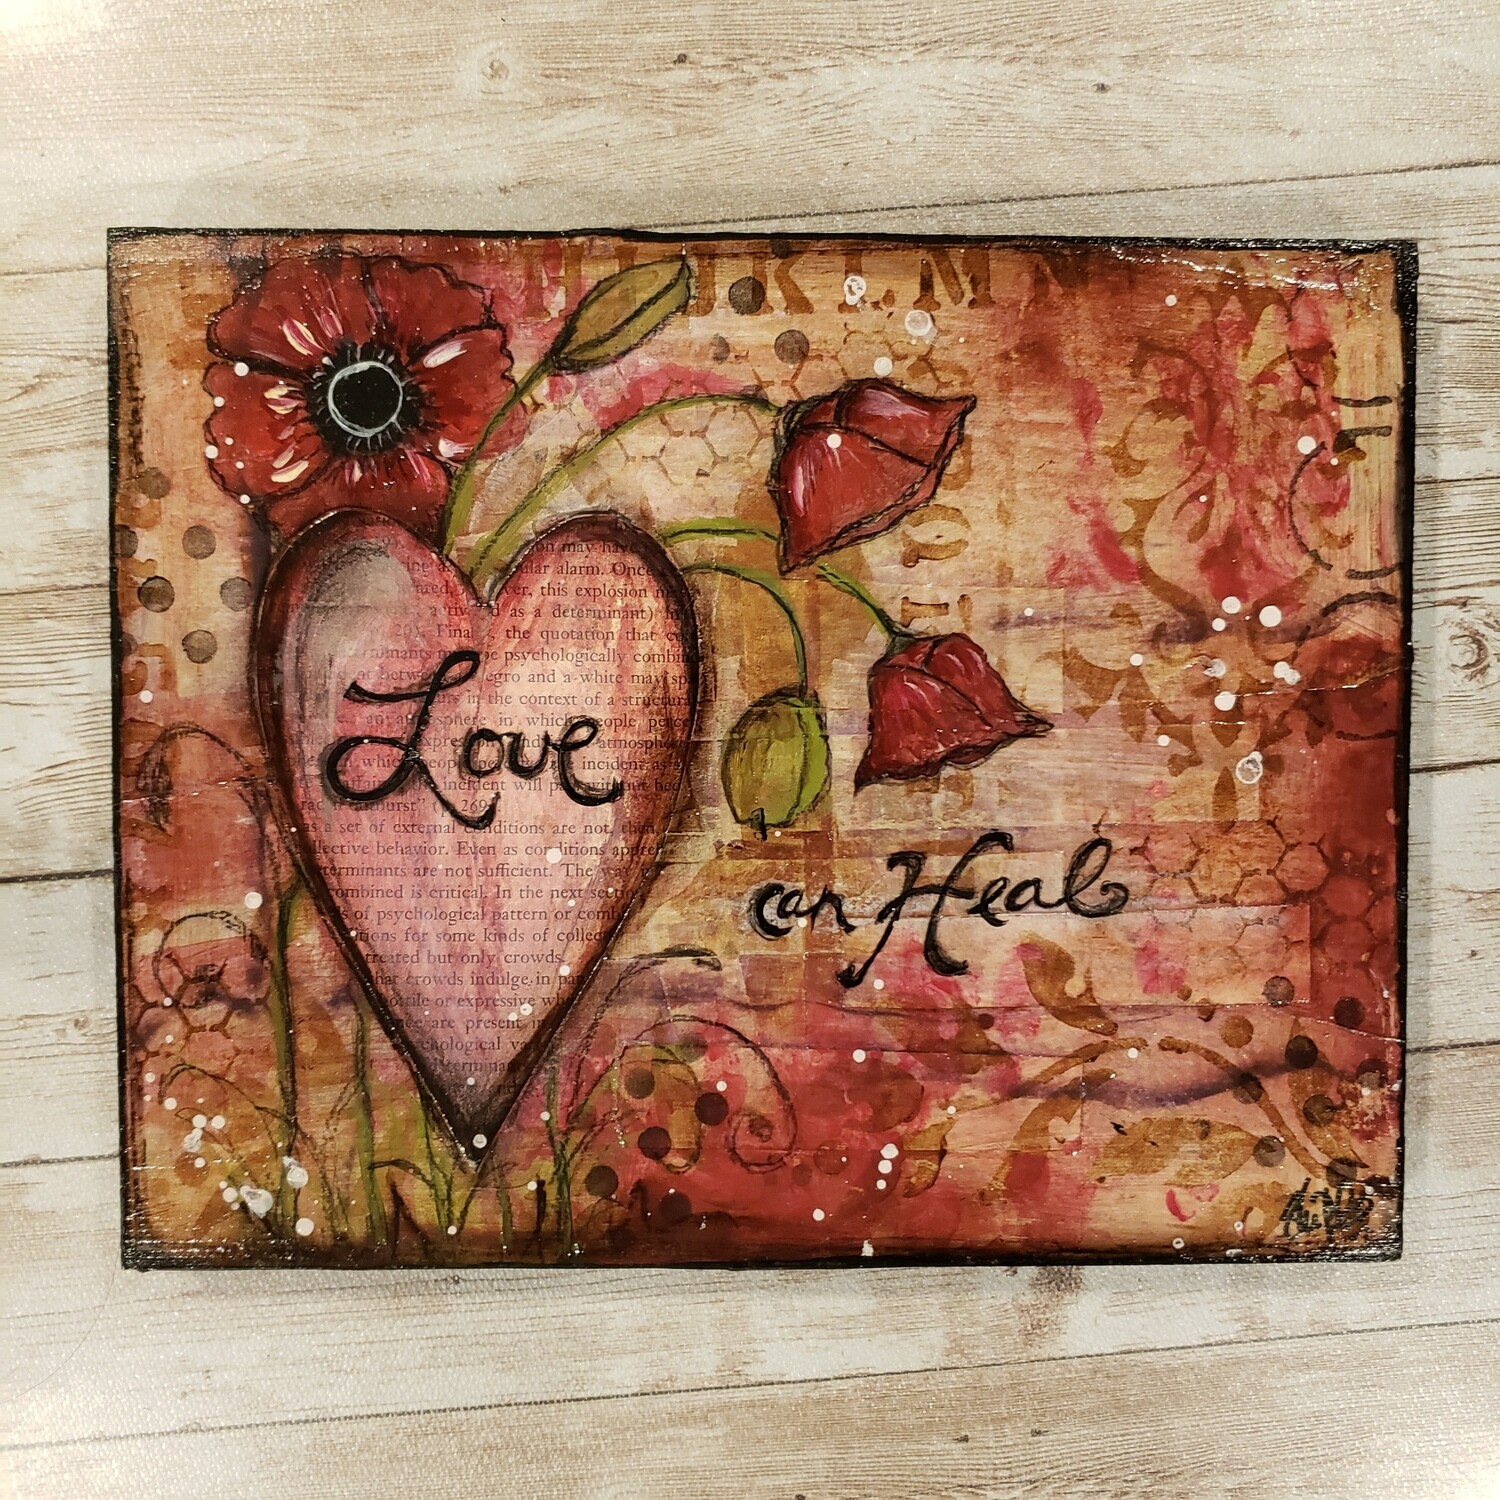 """Love can heal"" 10x8 clearance original on wood"